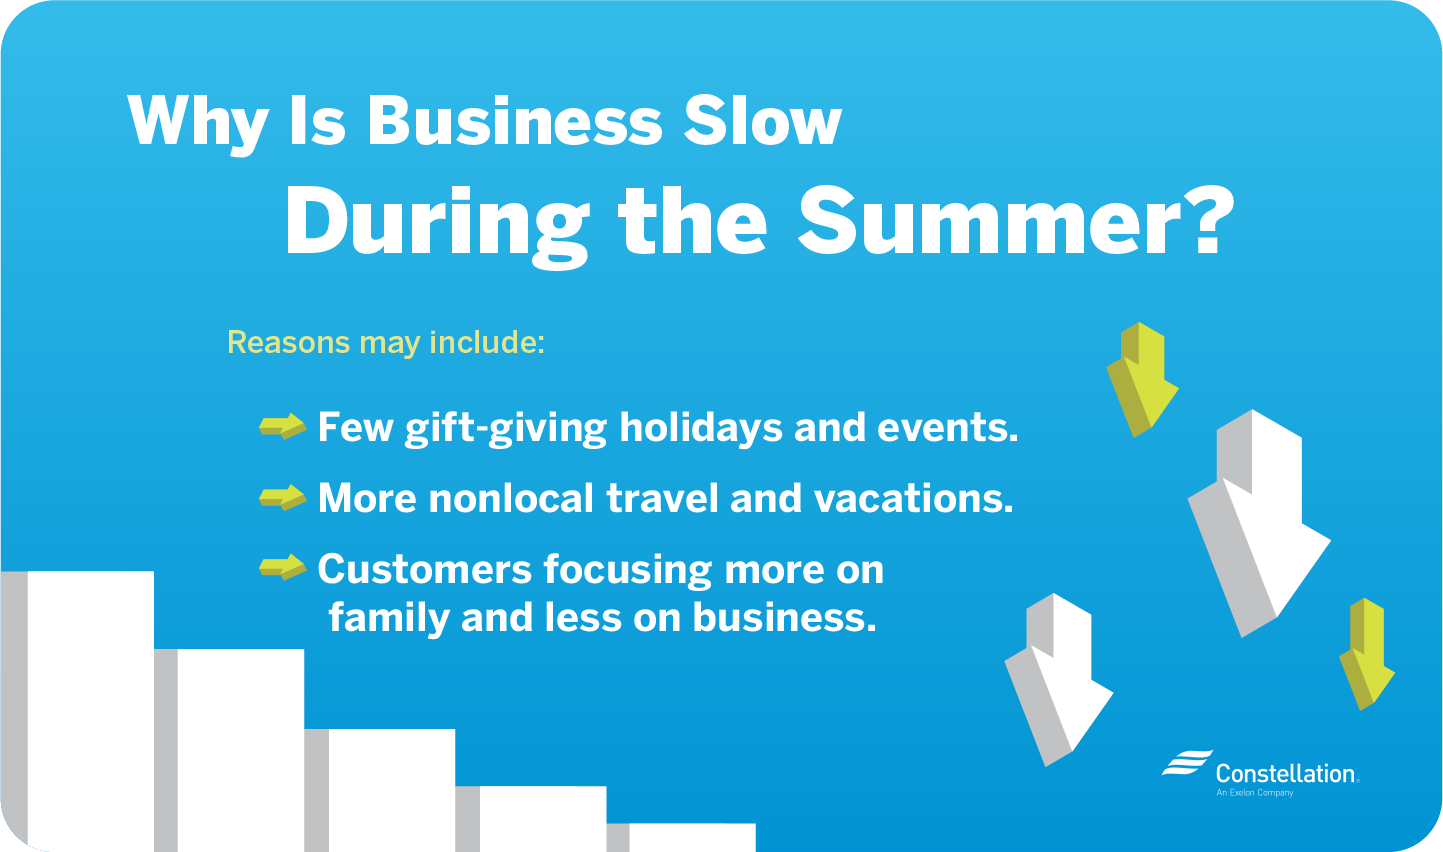 Why is business slow during the summer?